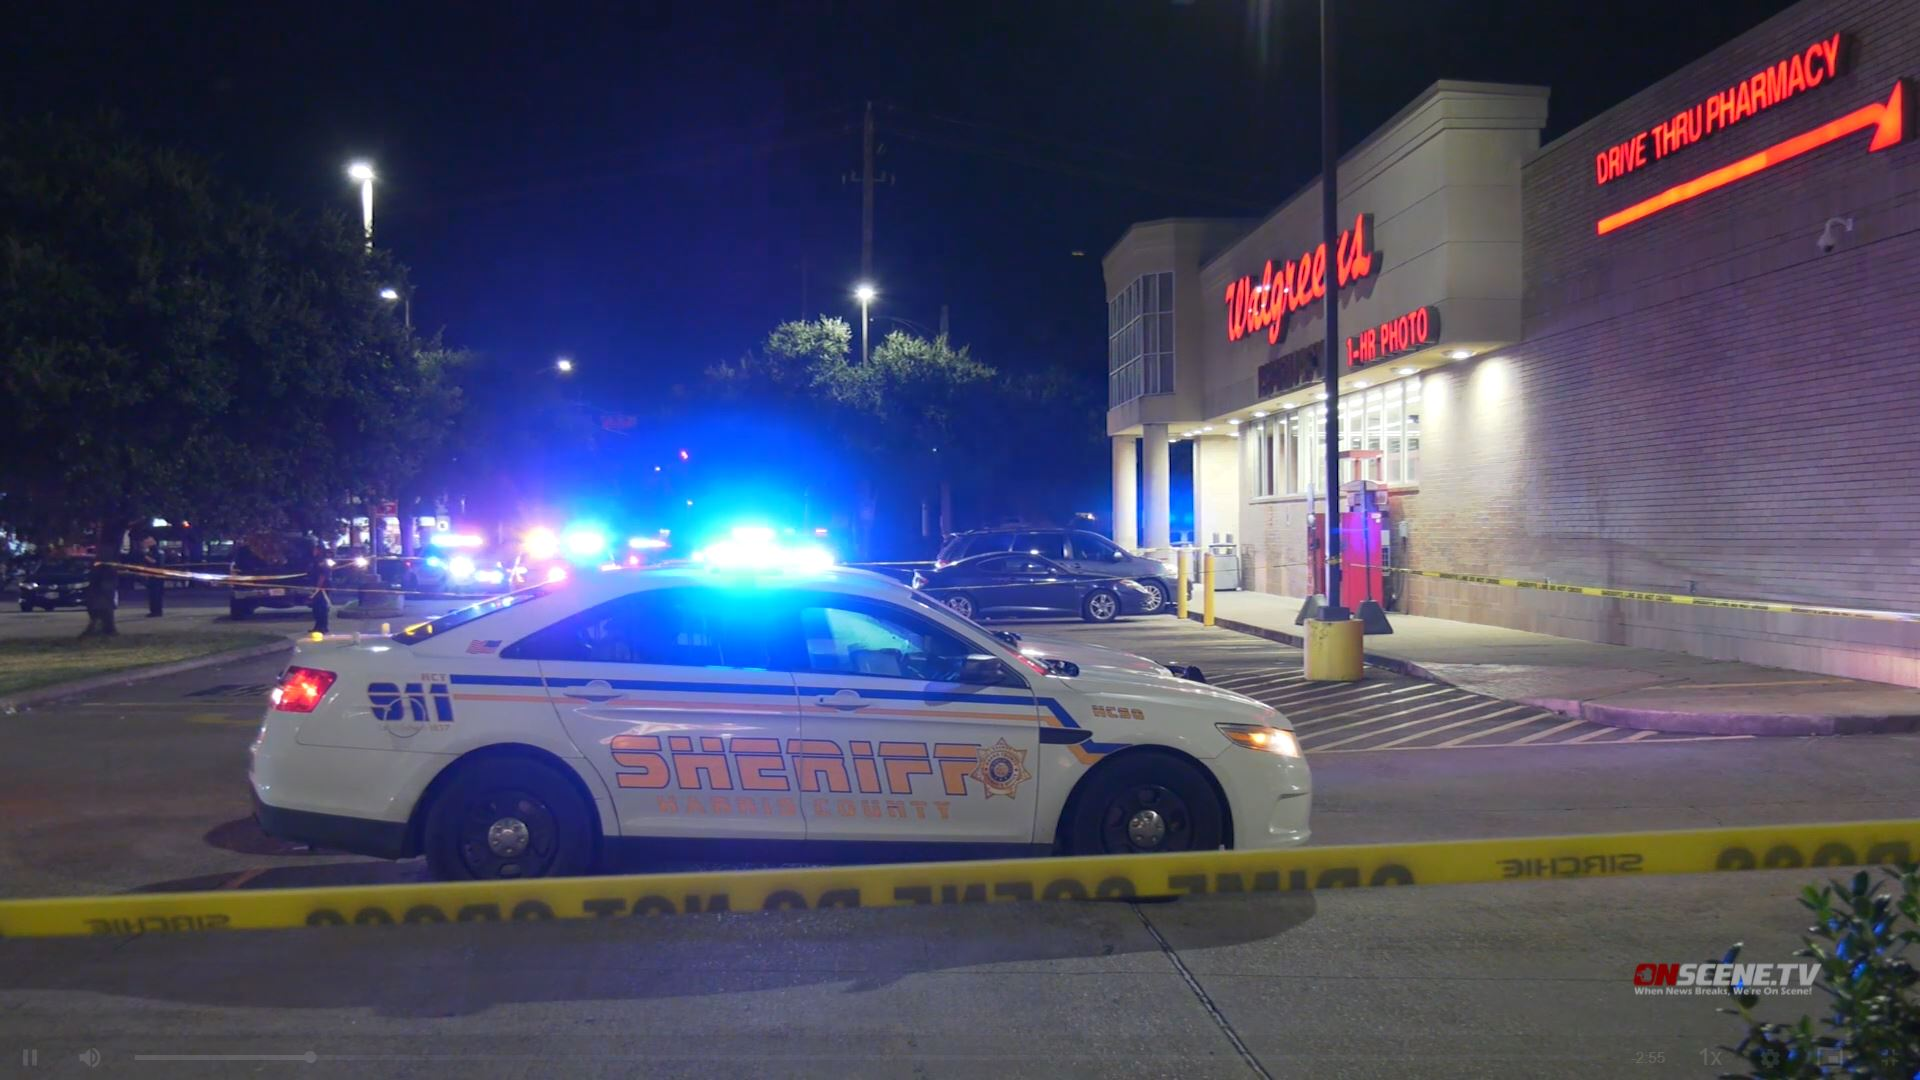 Texas Father Shot to Death Outside Walgreens While 12-Year-Old Daughter Was Inside Store